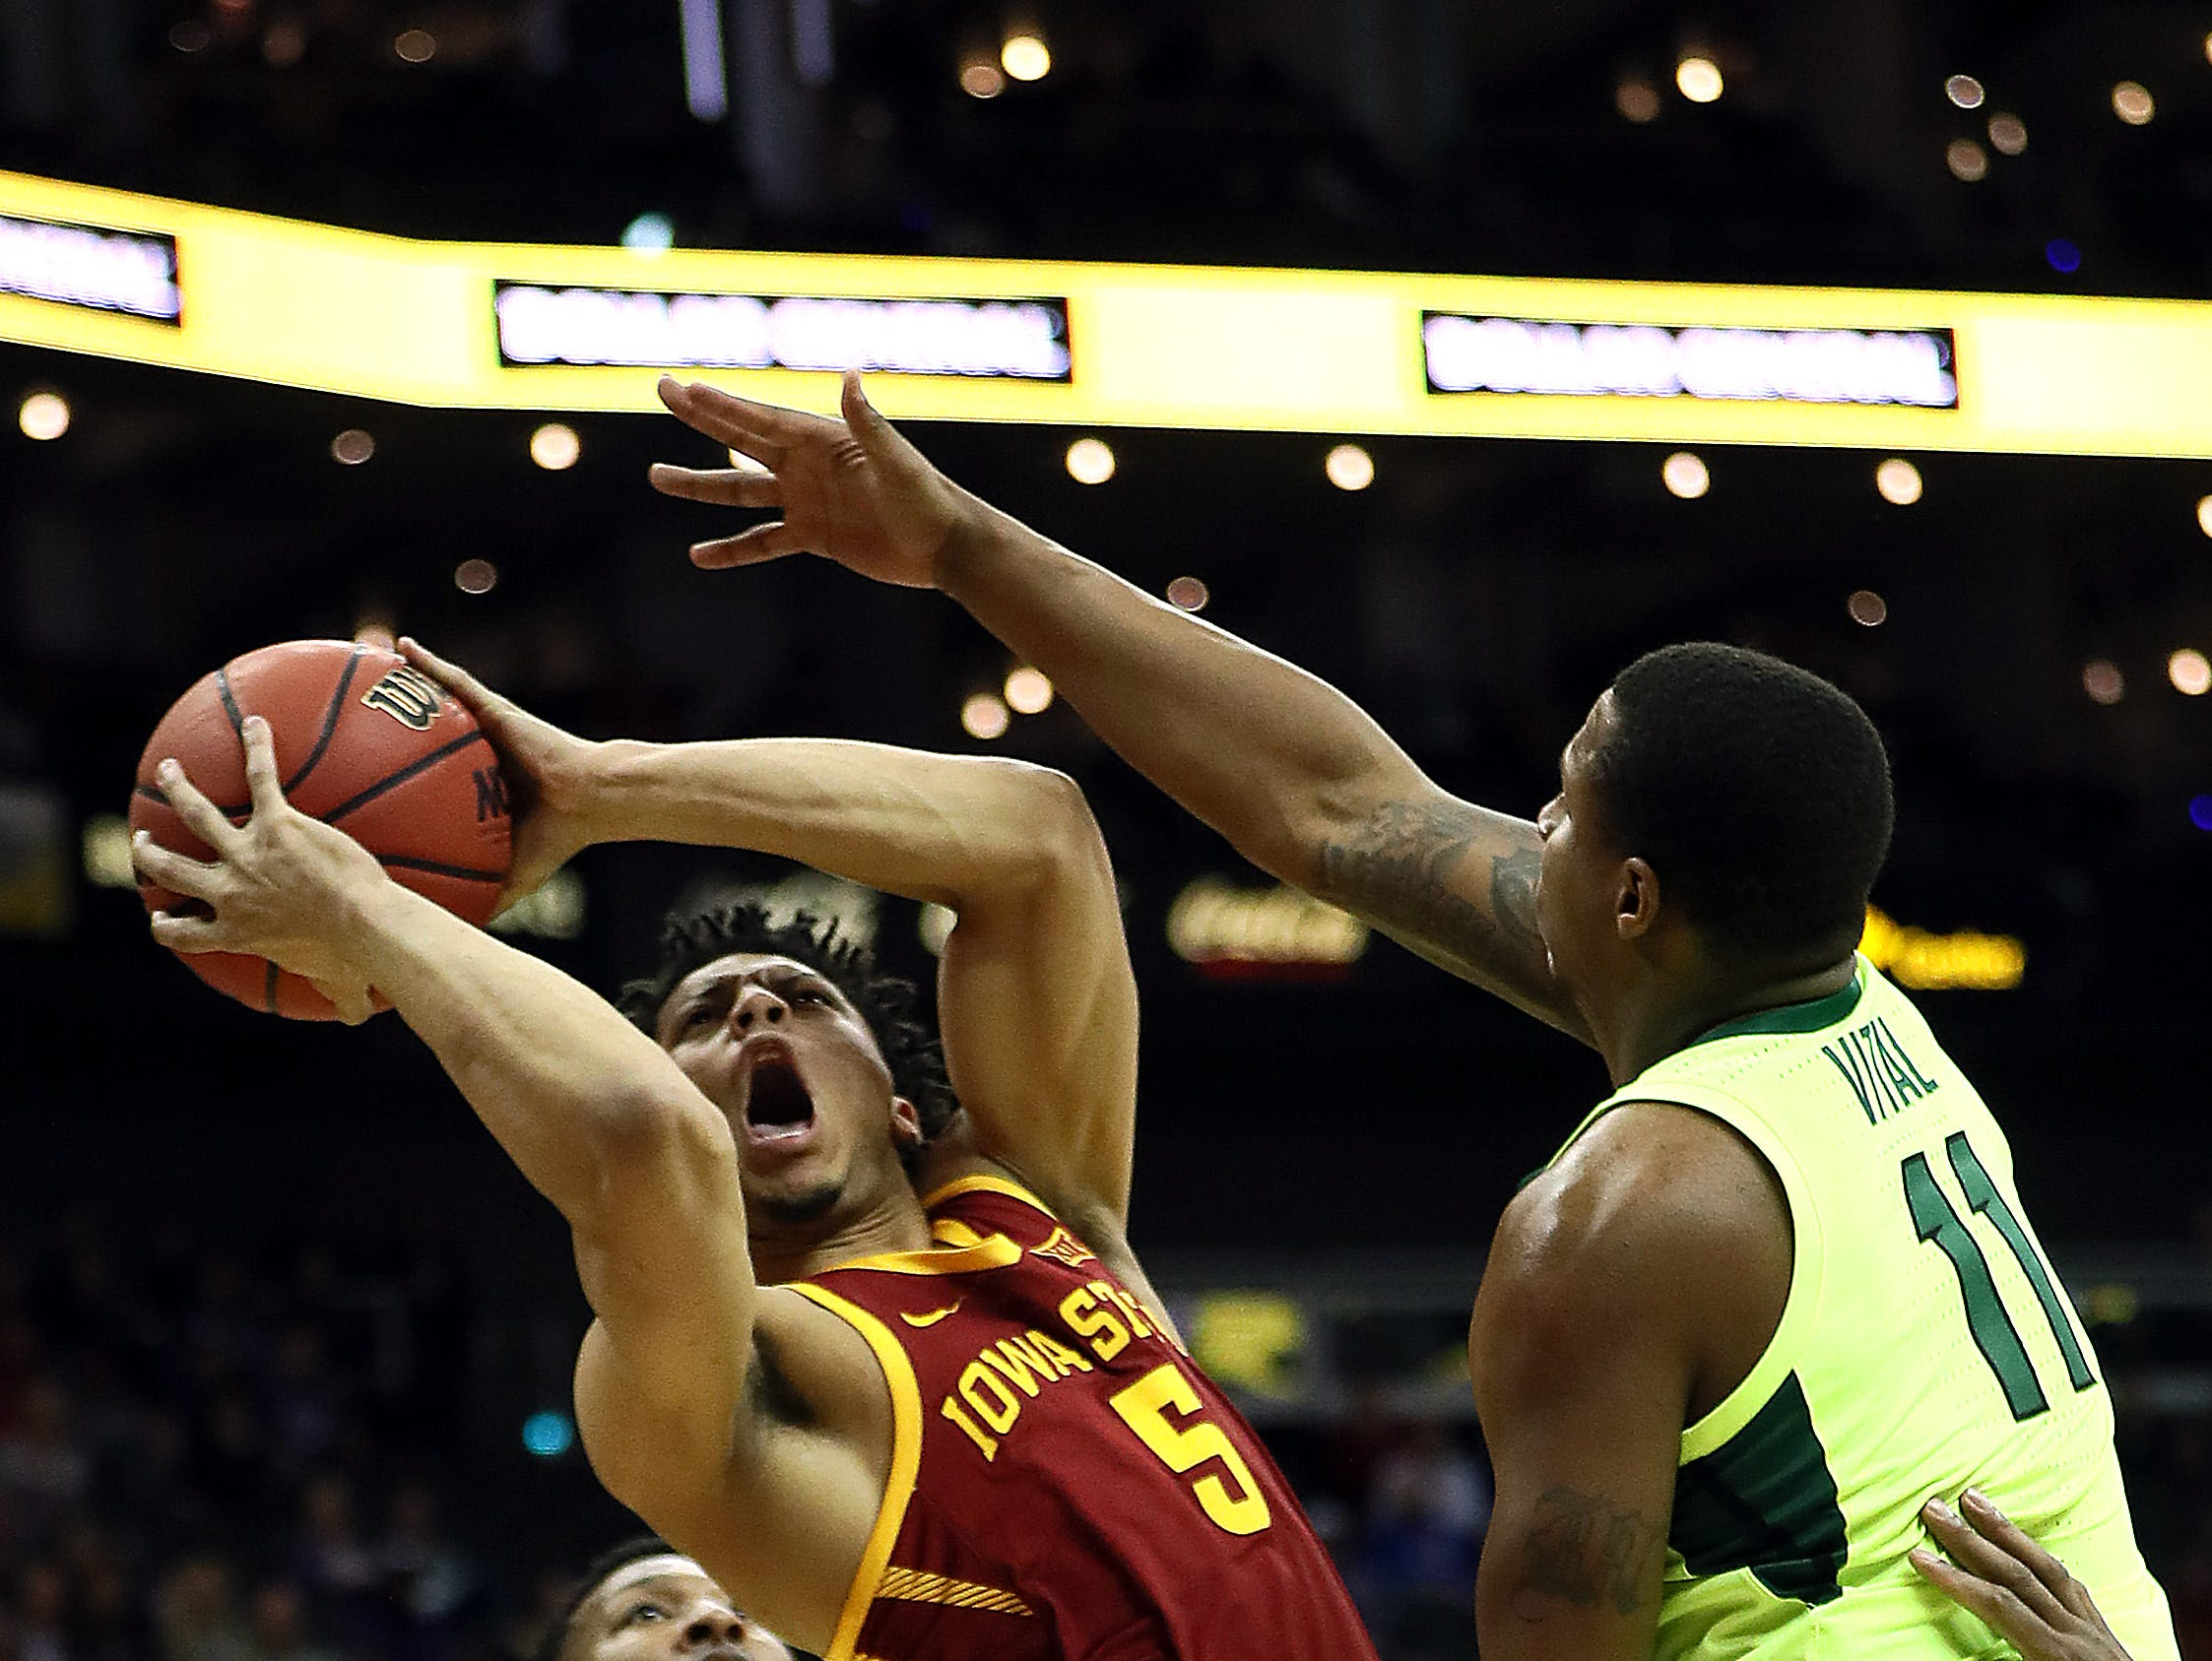 KANSAS CITY, MISSOURI - MARCH 14:  Lindell Wigginton #5 of the Iowa State Cyclones shoots as King McClure #3 and Mark Vital #11 of the Baylor Bears defend during the quarterfinal game of the Big 12 Basketball Tournament at Sprint Center on March 14, 2019 in Kansas City, Missouri. (Photo by Jamie Squire/Getty Images)